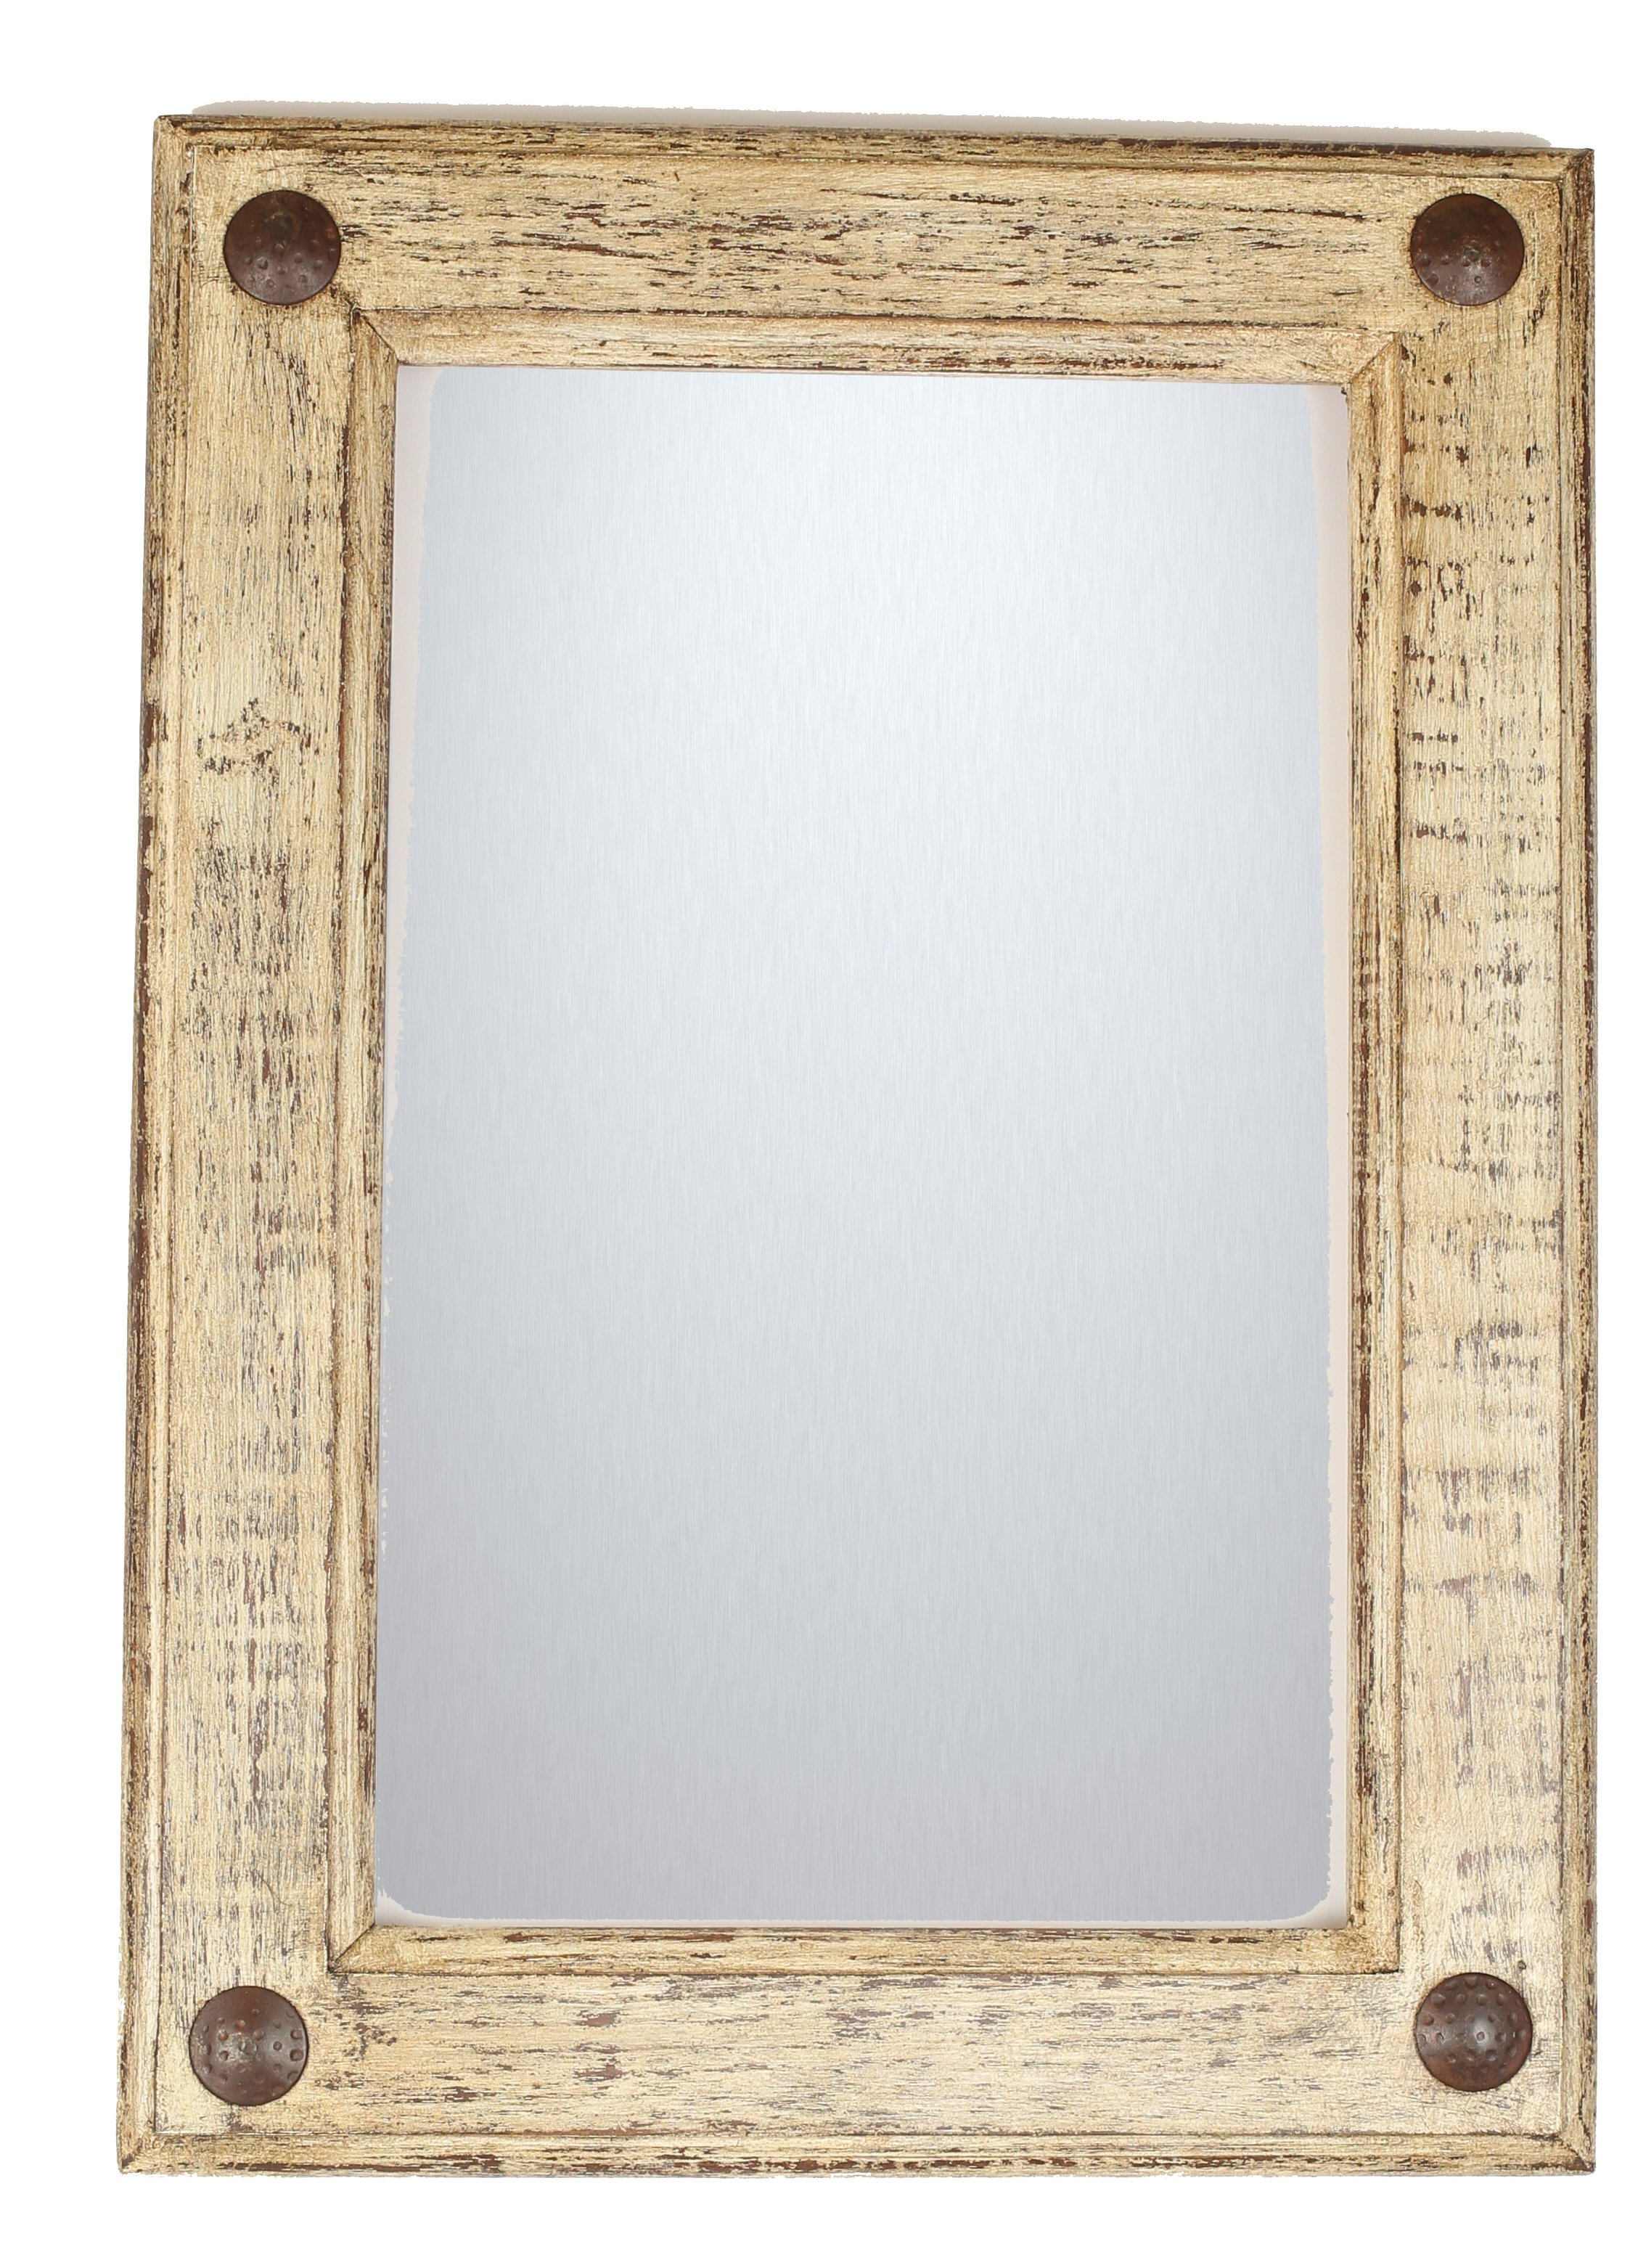 Shabby Rustic Accent Mirror Throughout Lajoie Rustic Accent Mirrors (View 4 of 20)